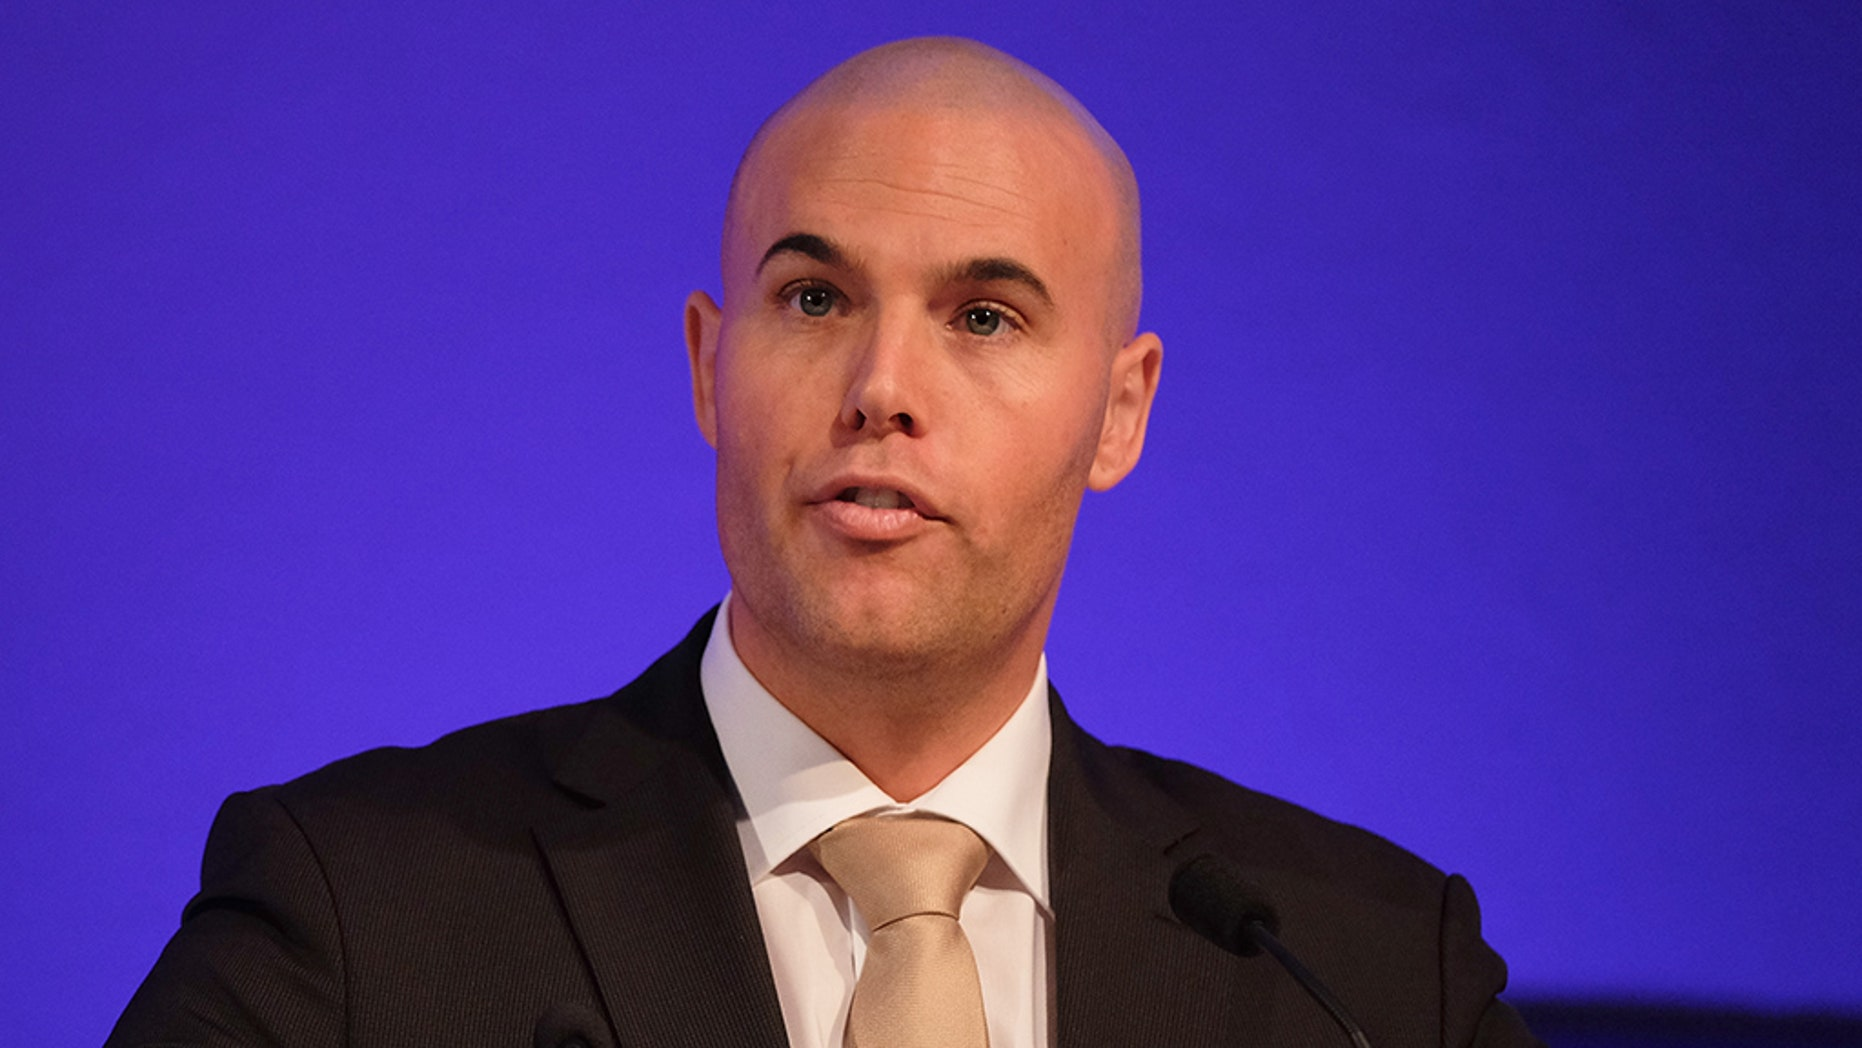 Joram Van Klaveren from the Dutch Voornederland Party, was once a staunch Muslim critic. (Photo by Ian Forsyth/Getty Images)